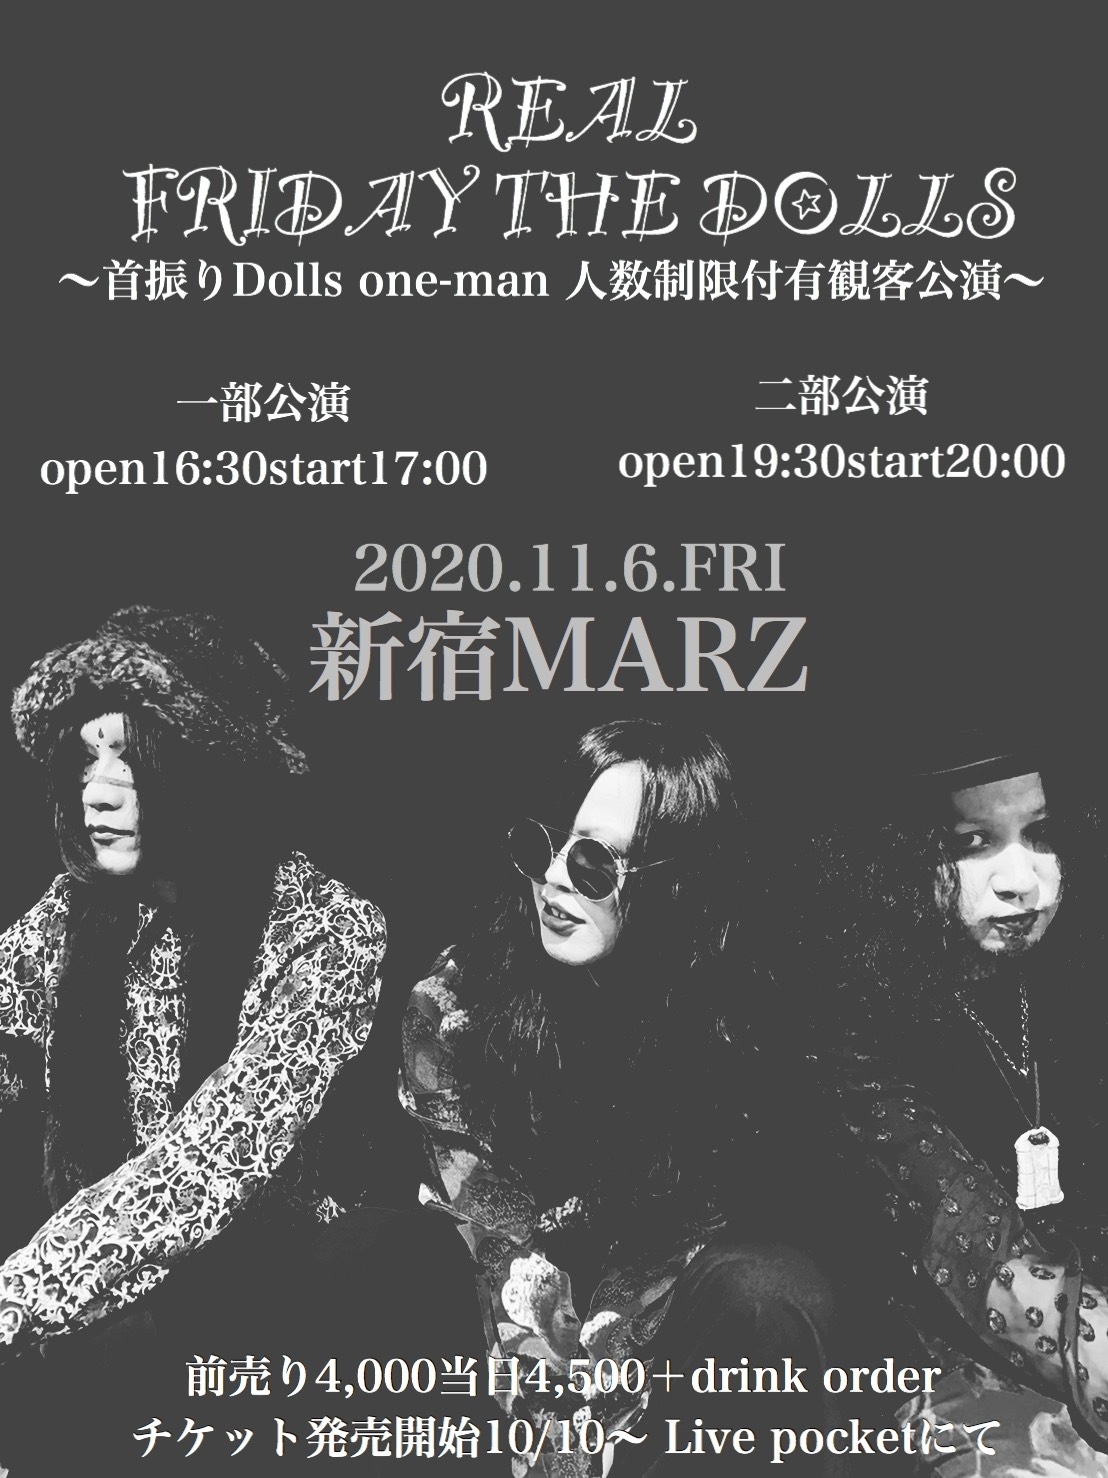 REAL FRIDAY THE DOLLS 〜首振りDolls one-man 人数制限付有観客公演〜【1部 17:00〜の回】